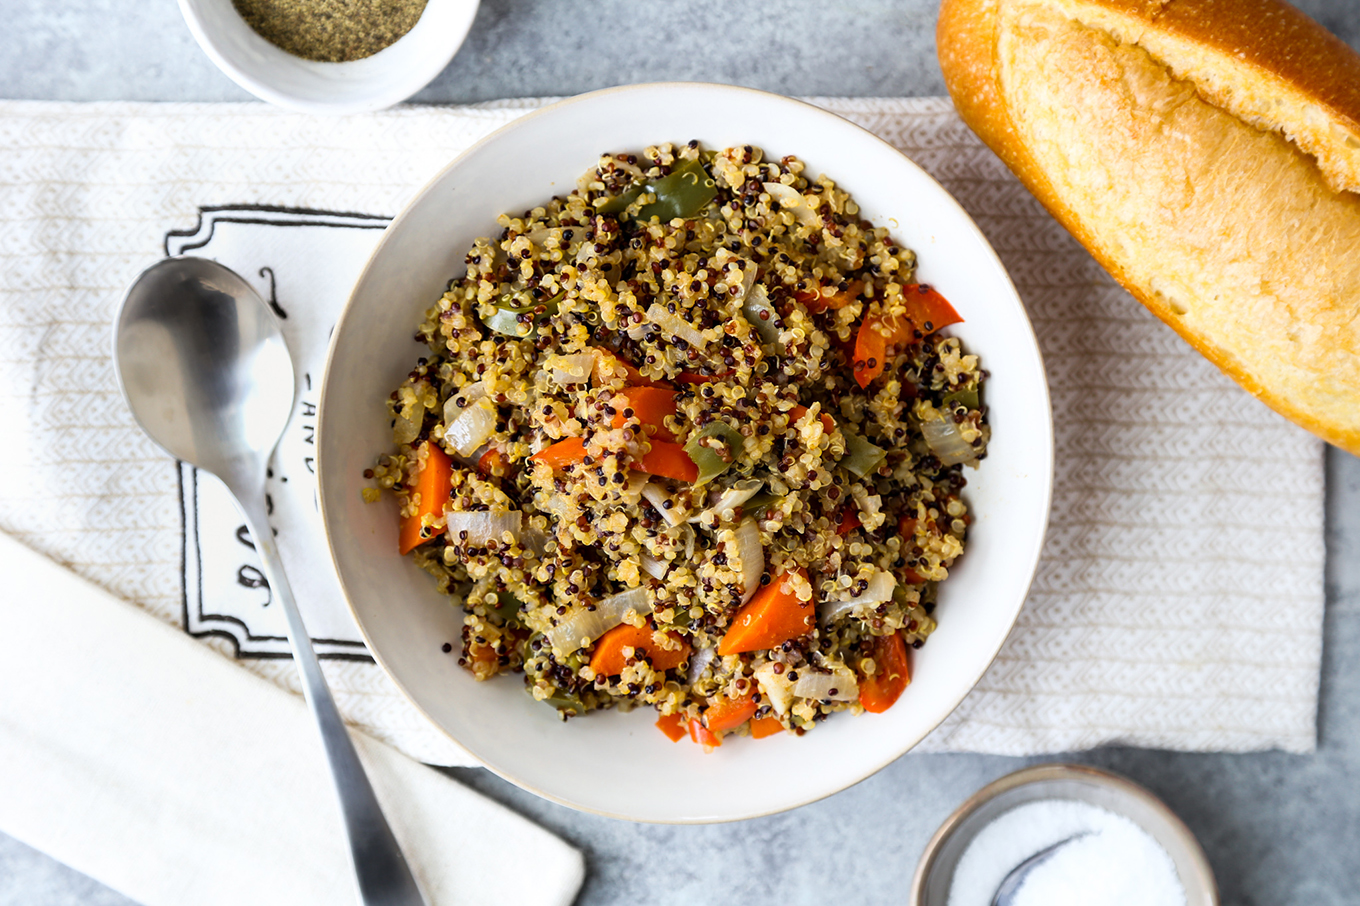 Warm Quinoa and Vegetables